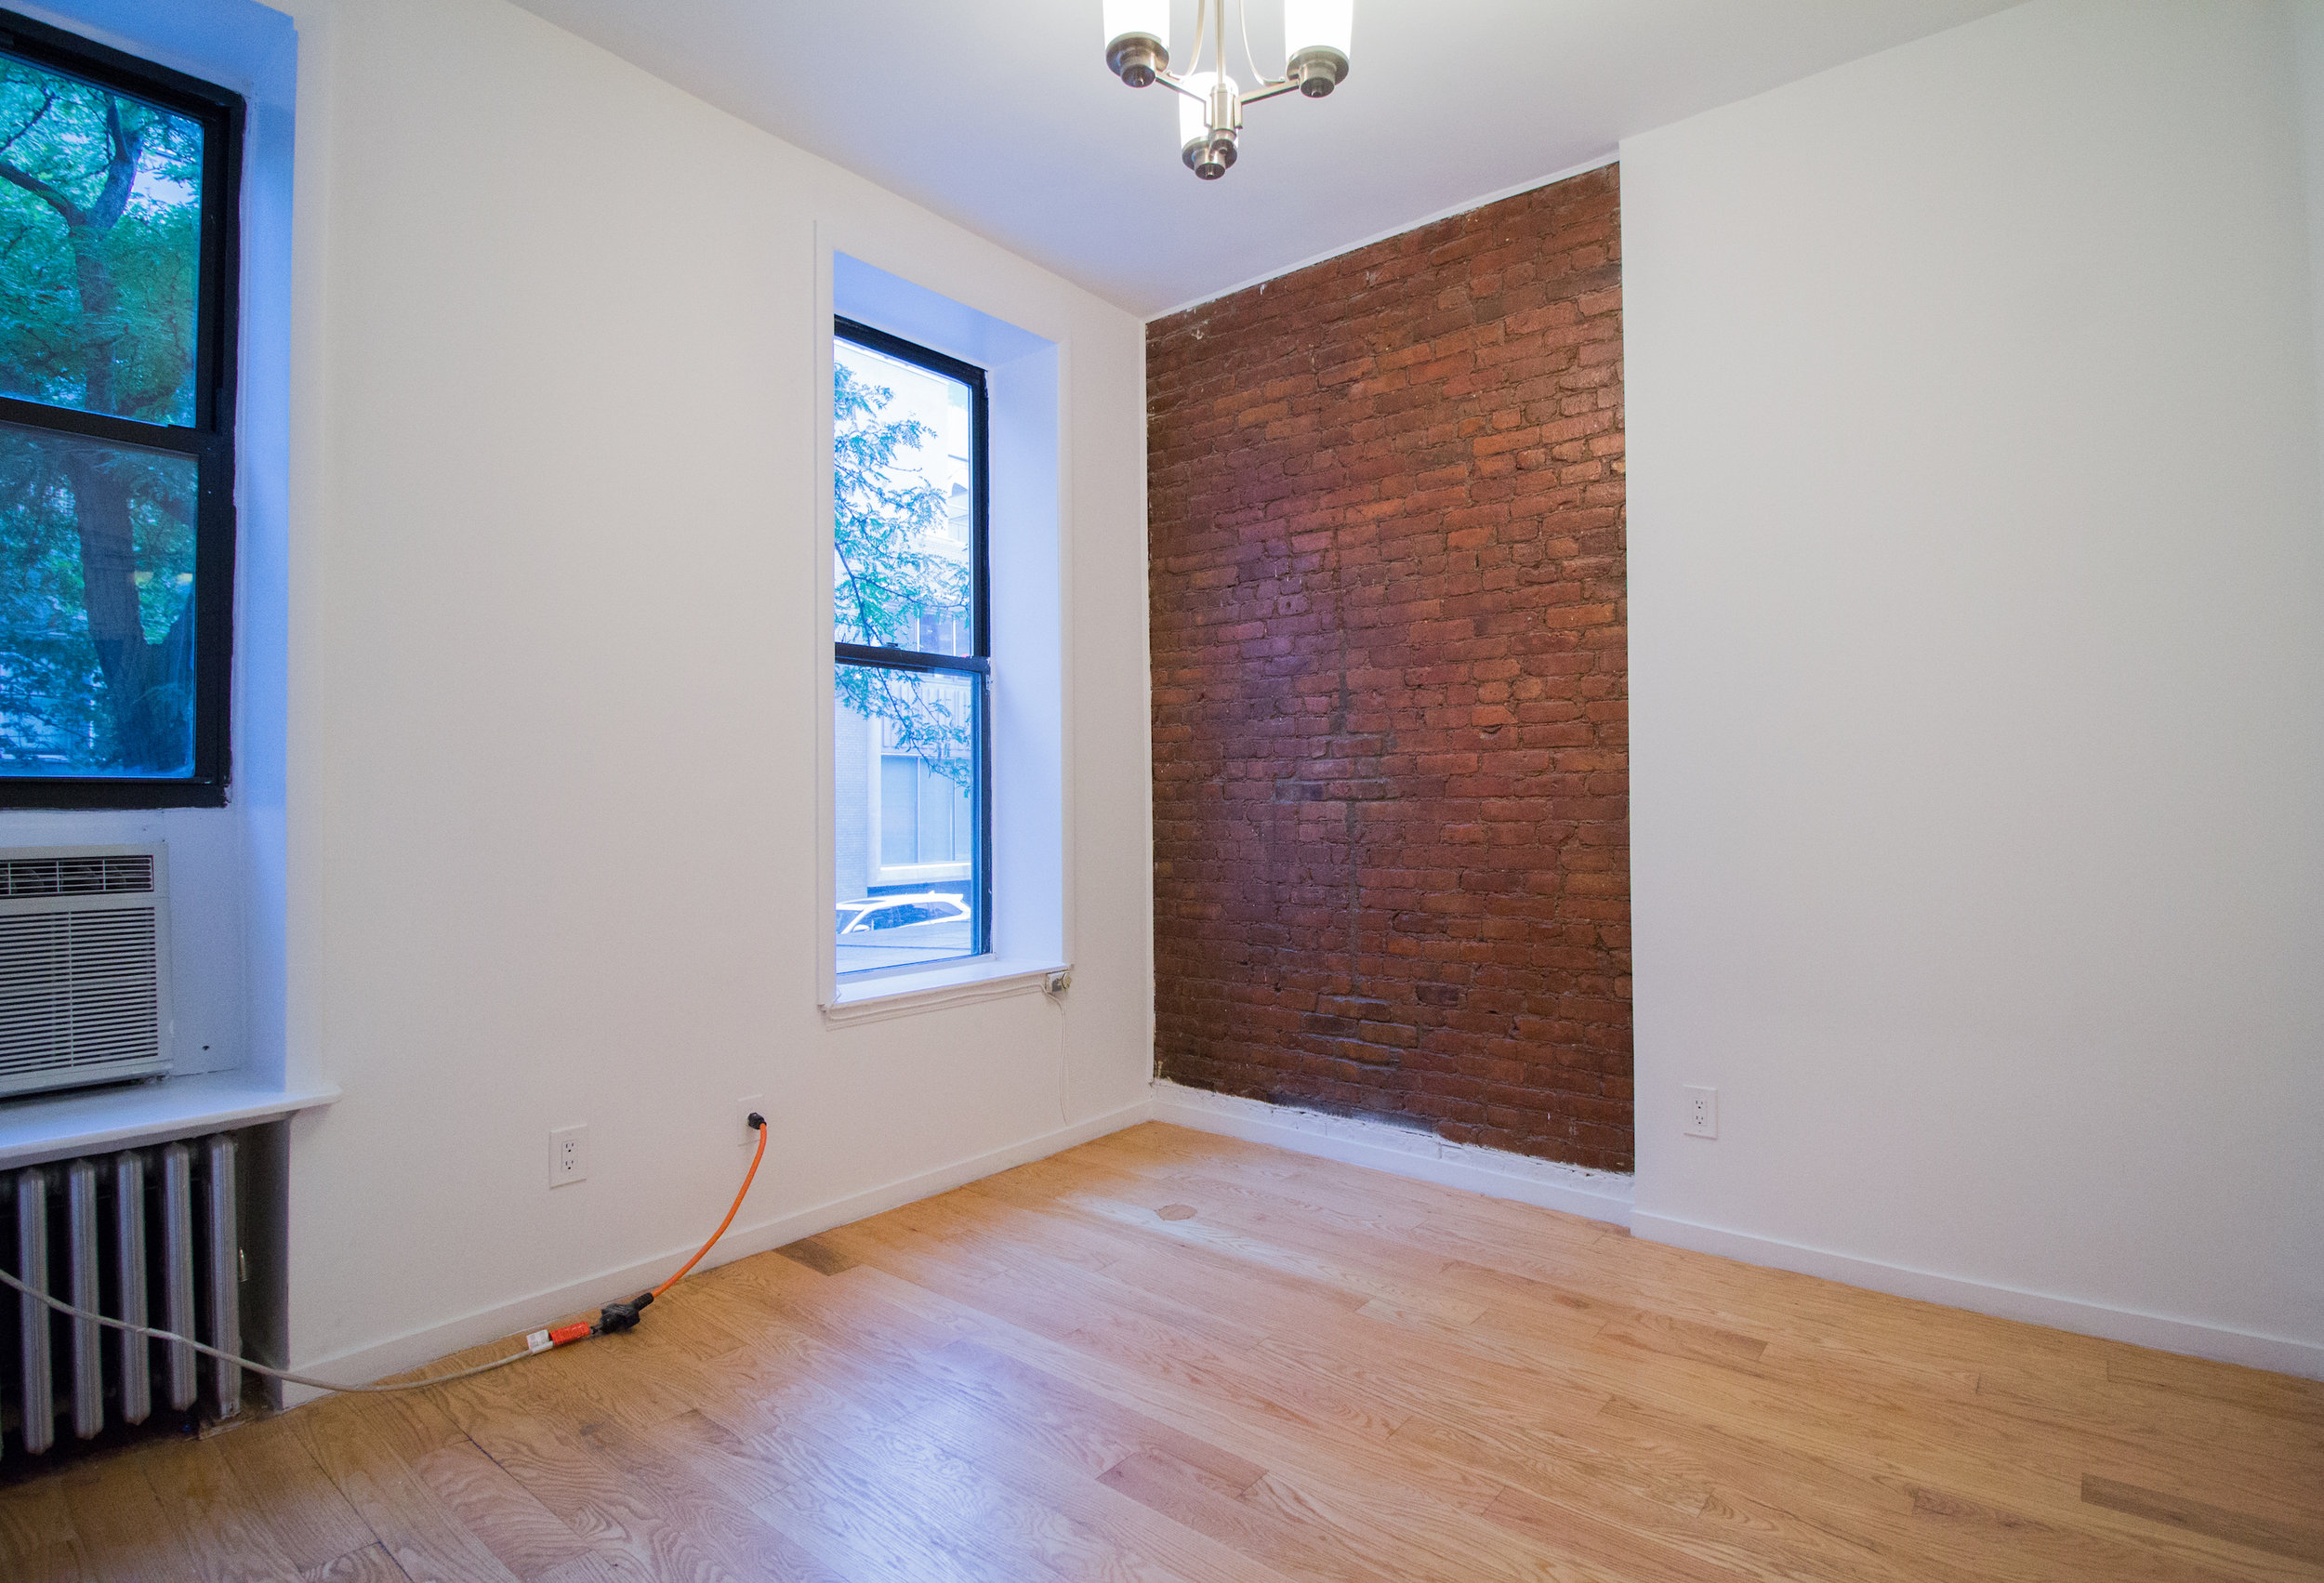 41 St. Marks Place #2 - Spacious Two Bedroom on St. Marks Place in East Village! Enjoy great size living space, separate kitchen and charming exposed brick. Each bedroom fits easily queen size beds with extra furniture! Located on a first floor of a well maintained & secured building right on St. Marks place and 2nd Ave. Live in the prime area filled with restaurants, shops, stores, entertainment and near subway lines such as N, R, 6, L lines and other public transportation.*Pets allowed case by case* Contact us to schedule a showing!Rent: $3,195 /monthTerms: 12 - 12 MonthsAvailable: Immediate